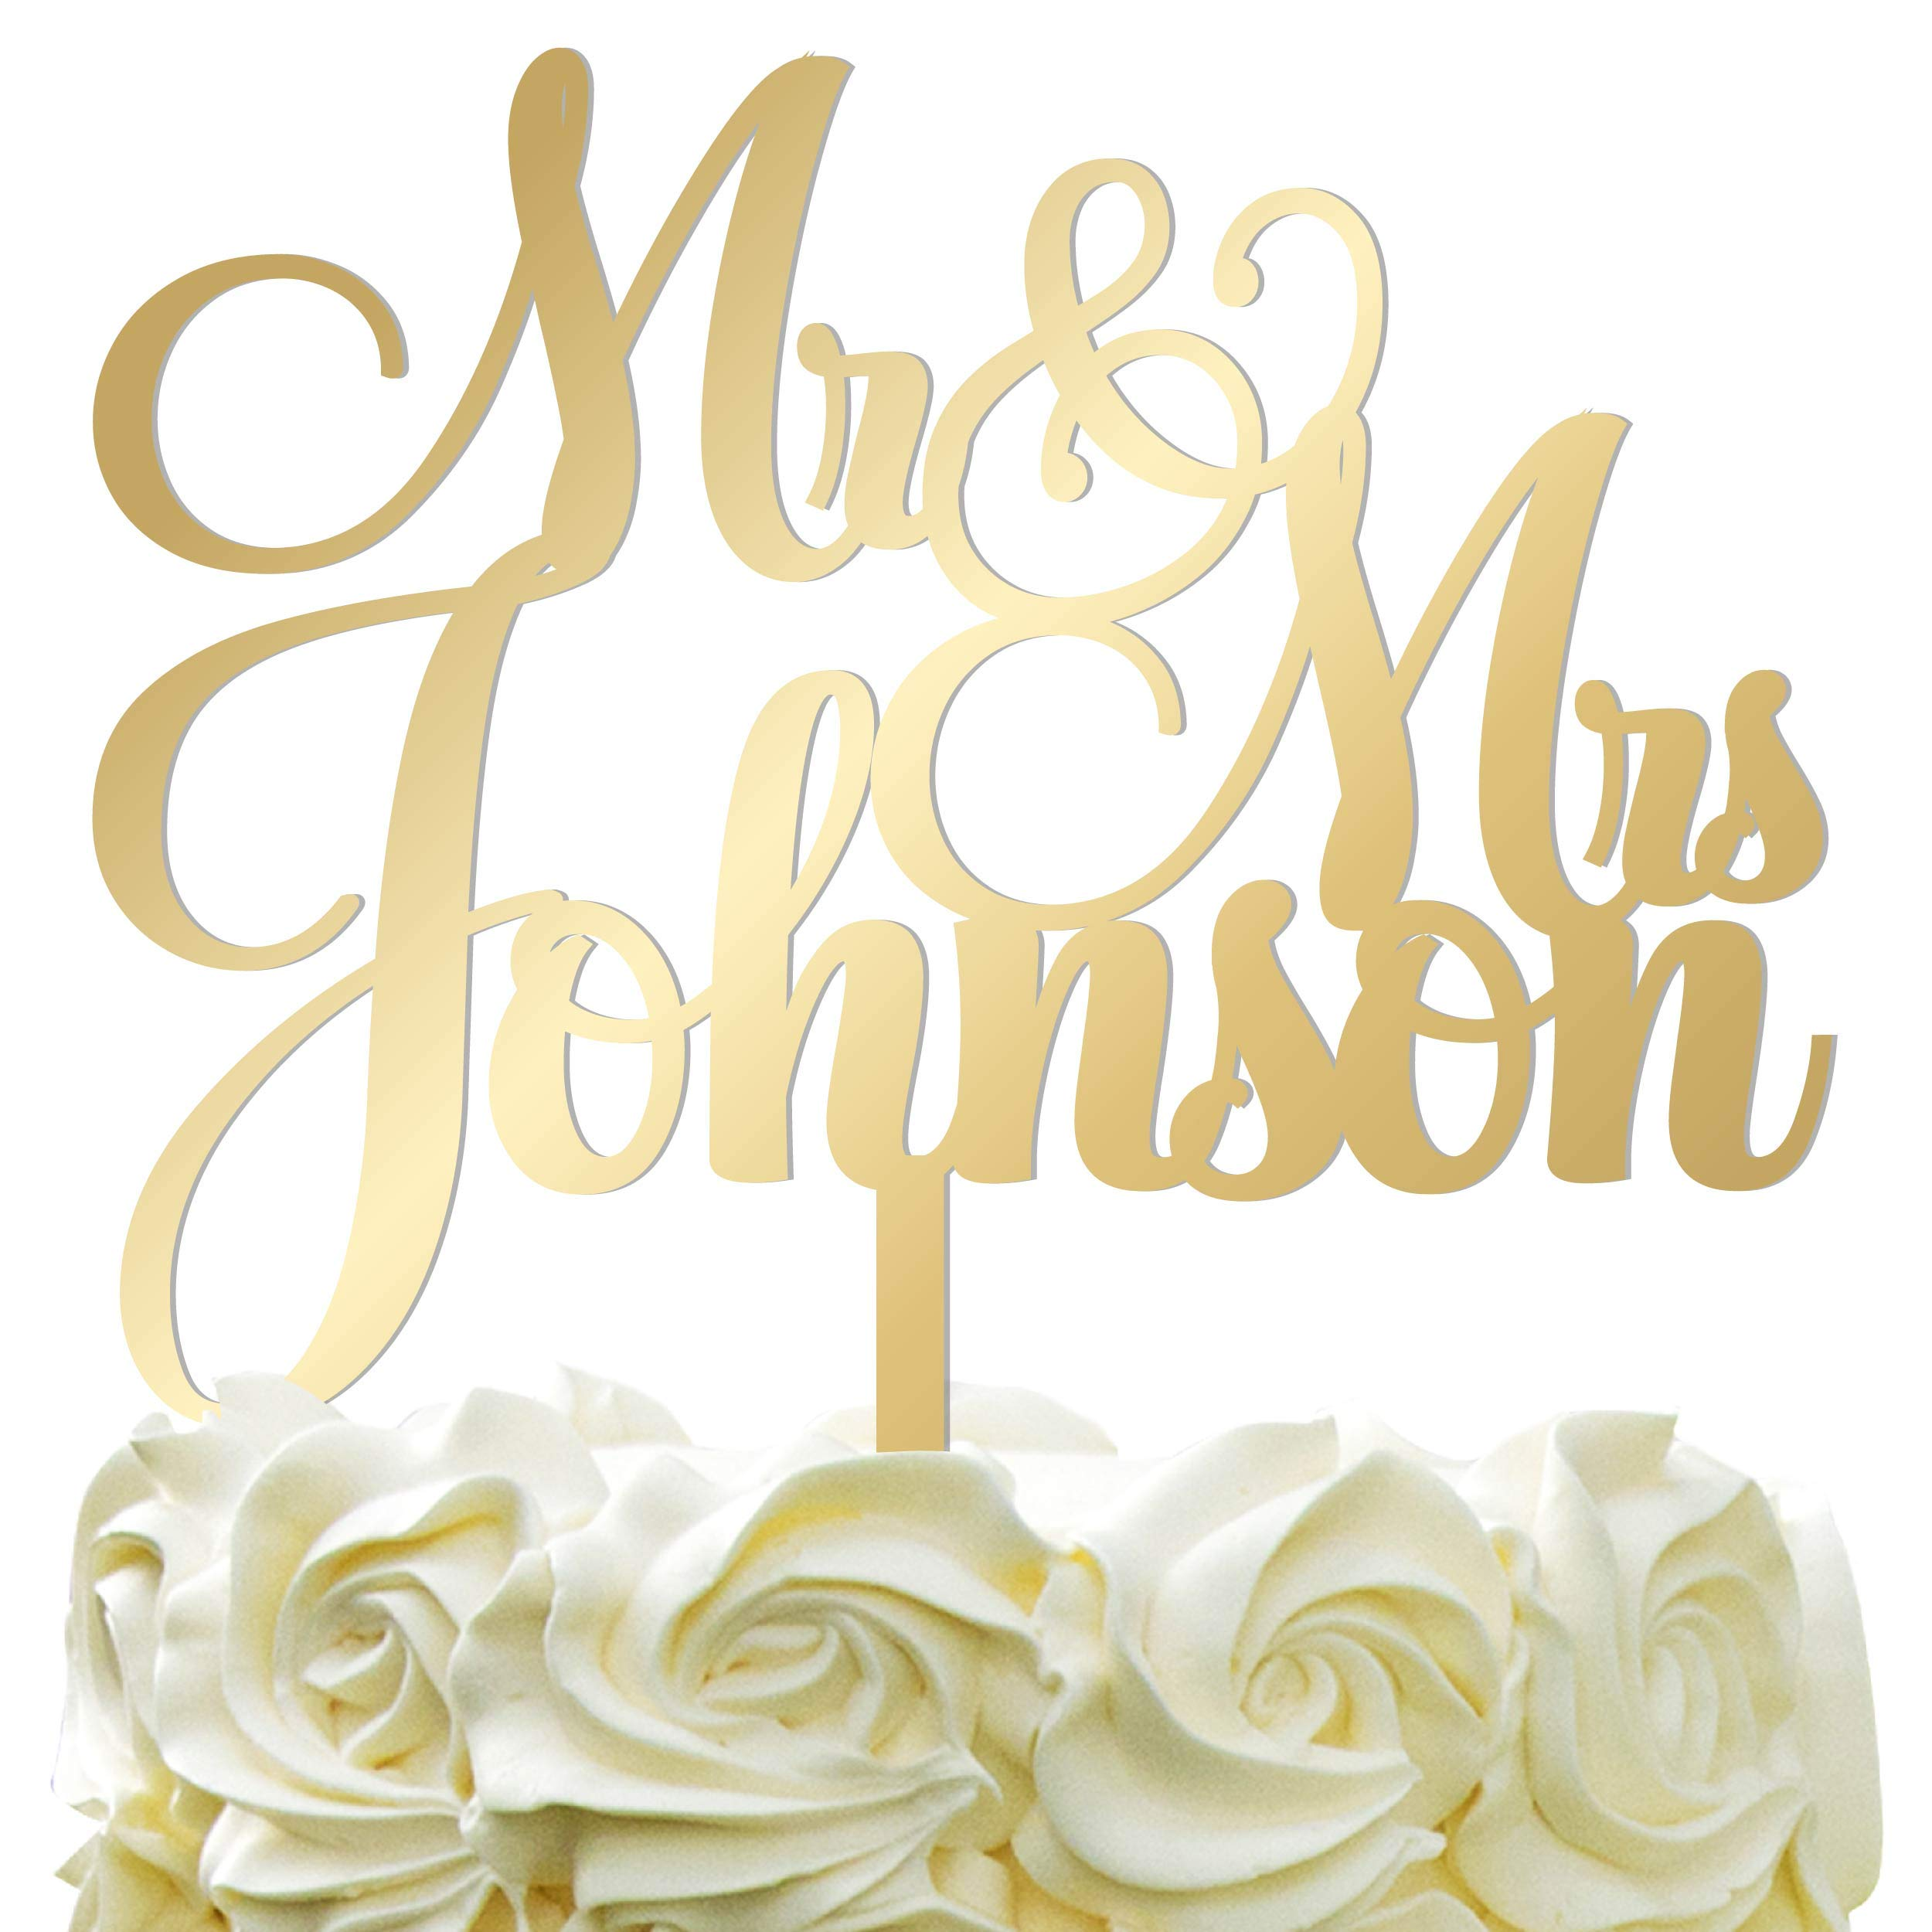 Personalized Wedding Cake Topper - Wedding Cake Decoration Customized Mr & Mrs Last Name To Be Bride & Groom script fontMirrored Acrylic